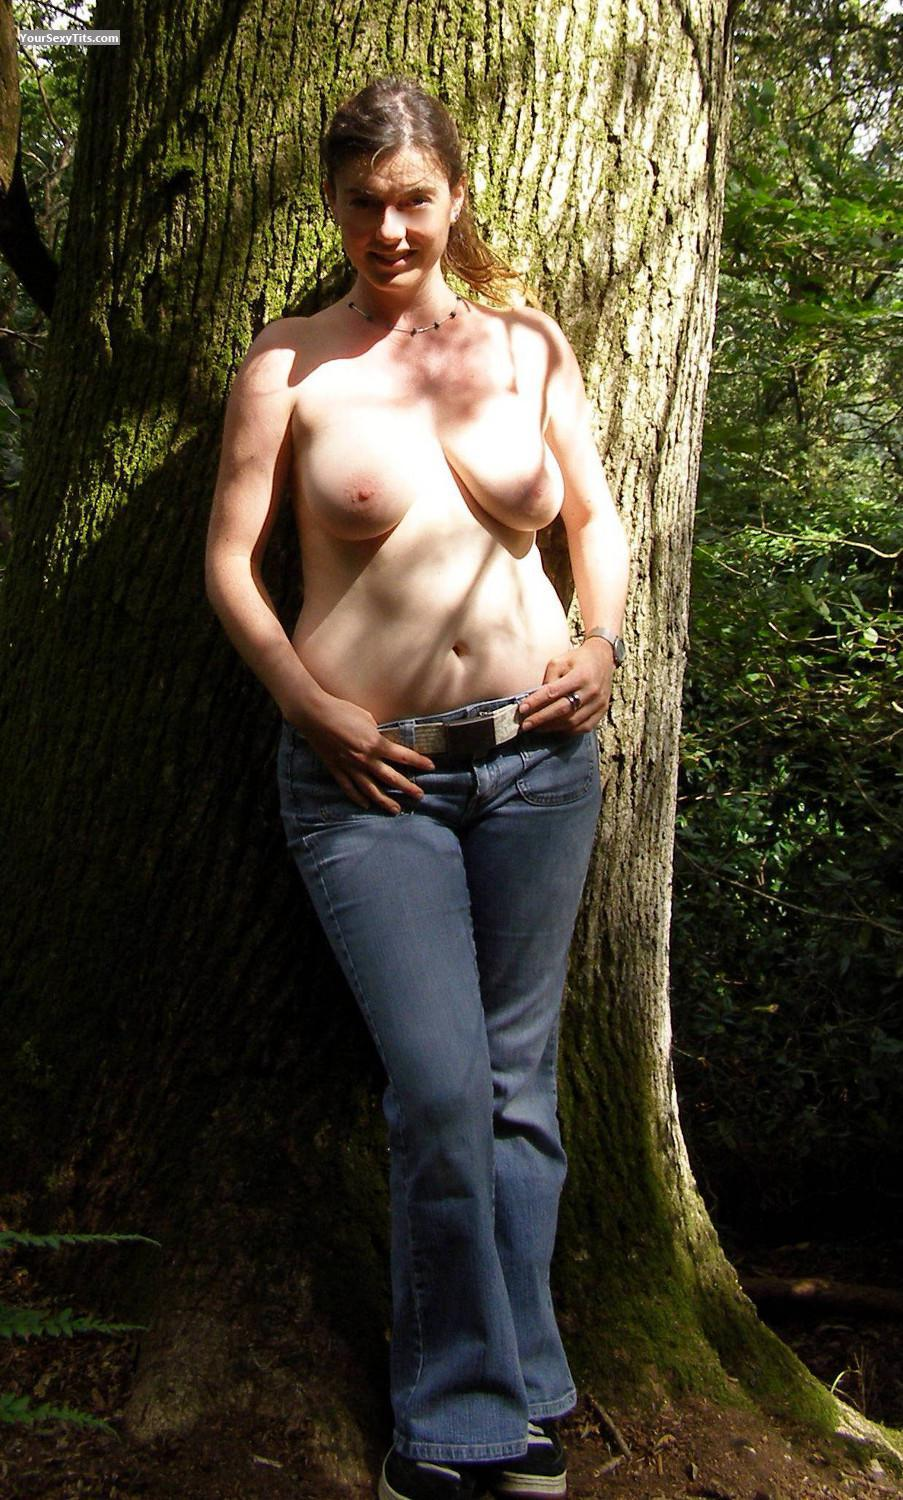 Tit Flash: Big Tits - Topless Beth from United Kingdom